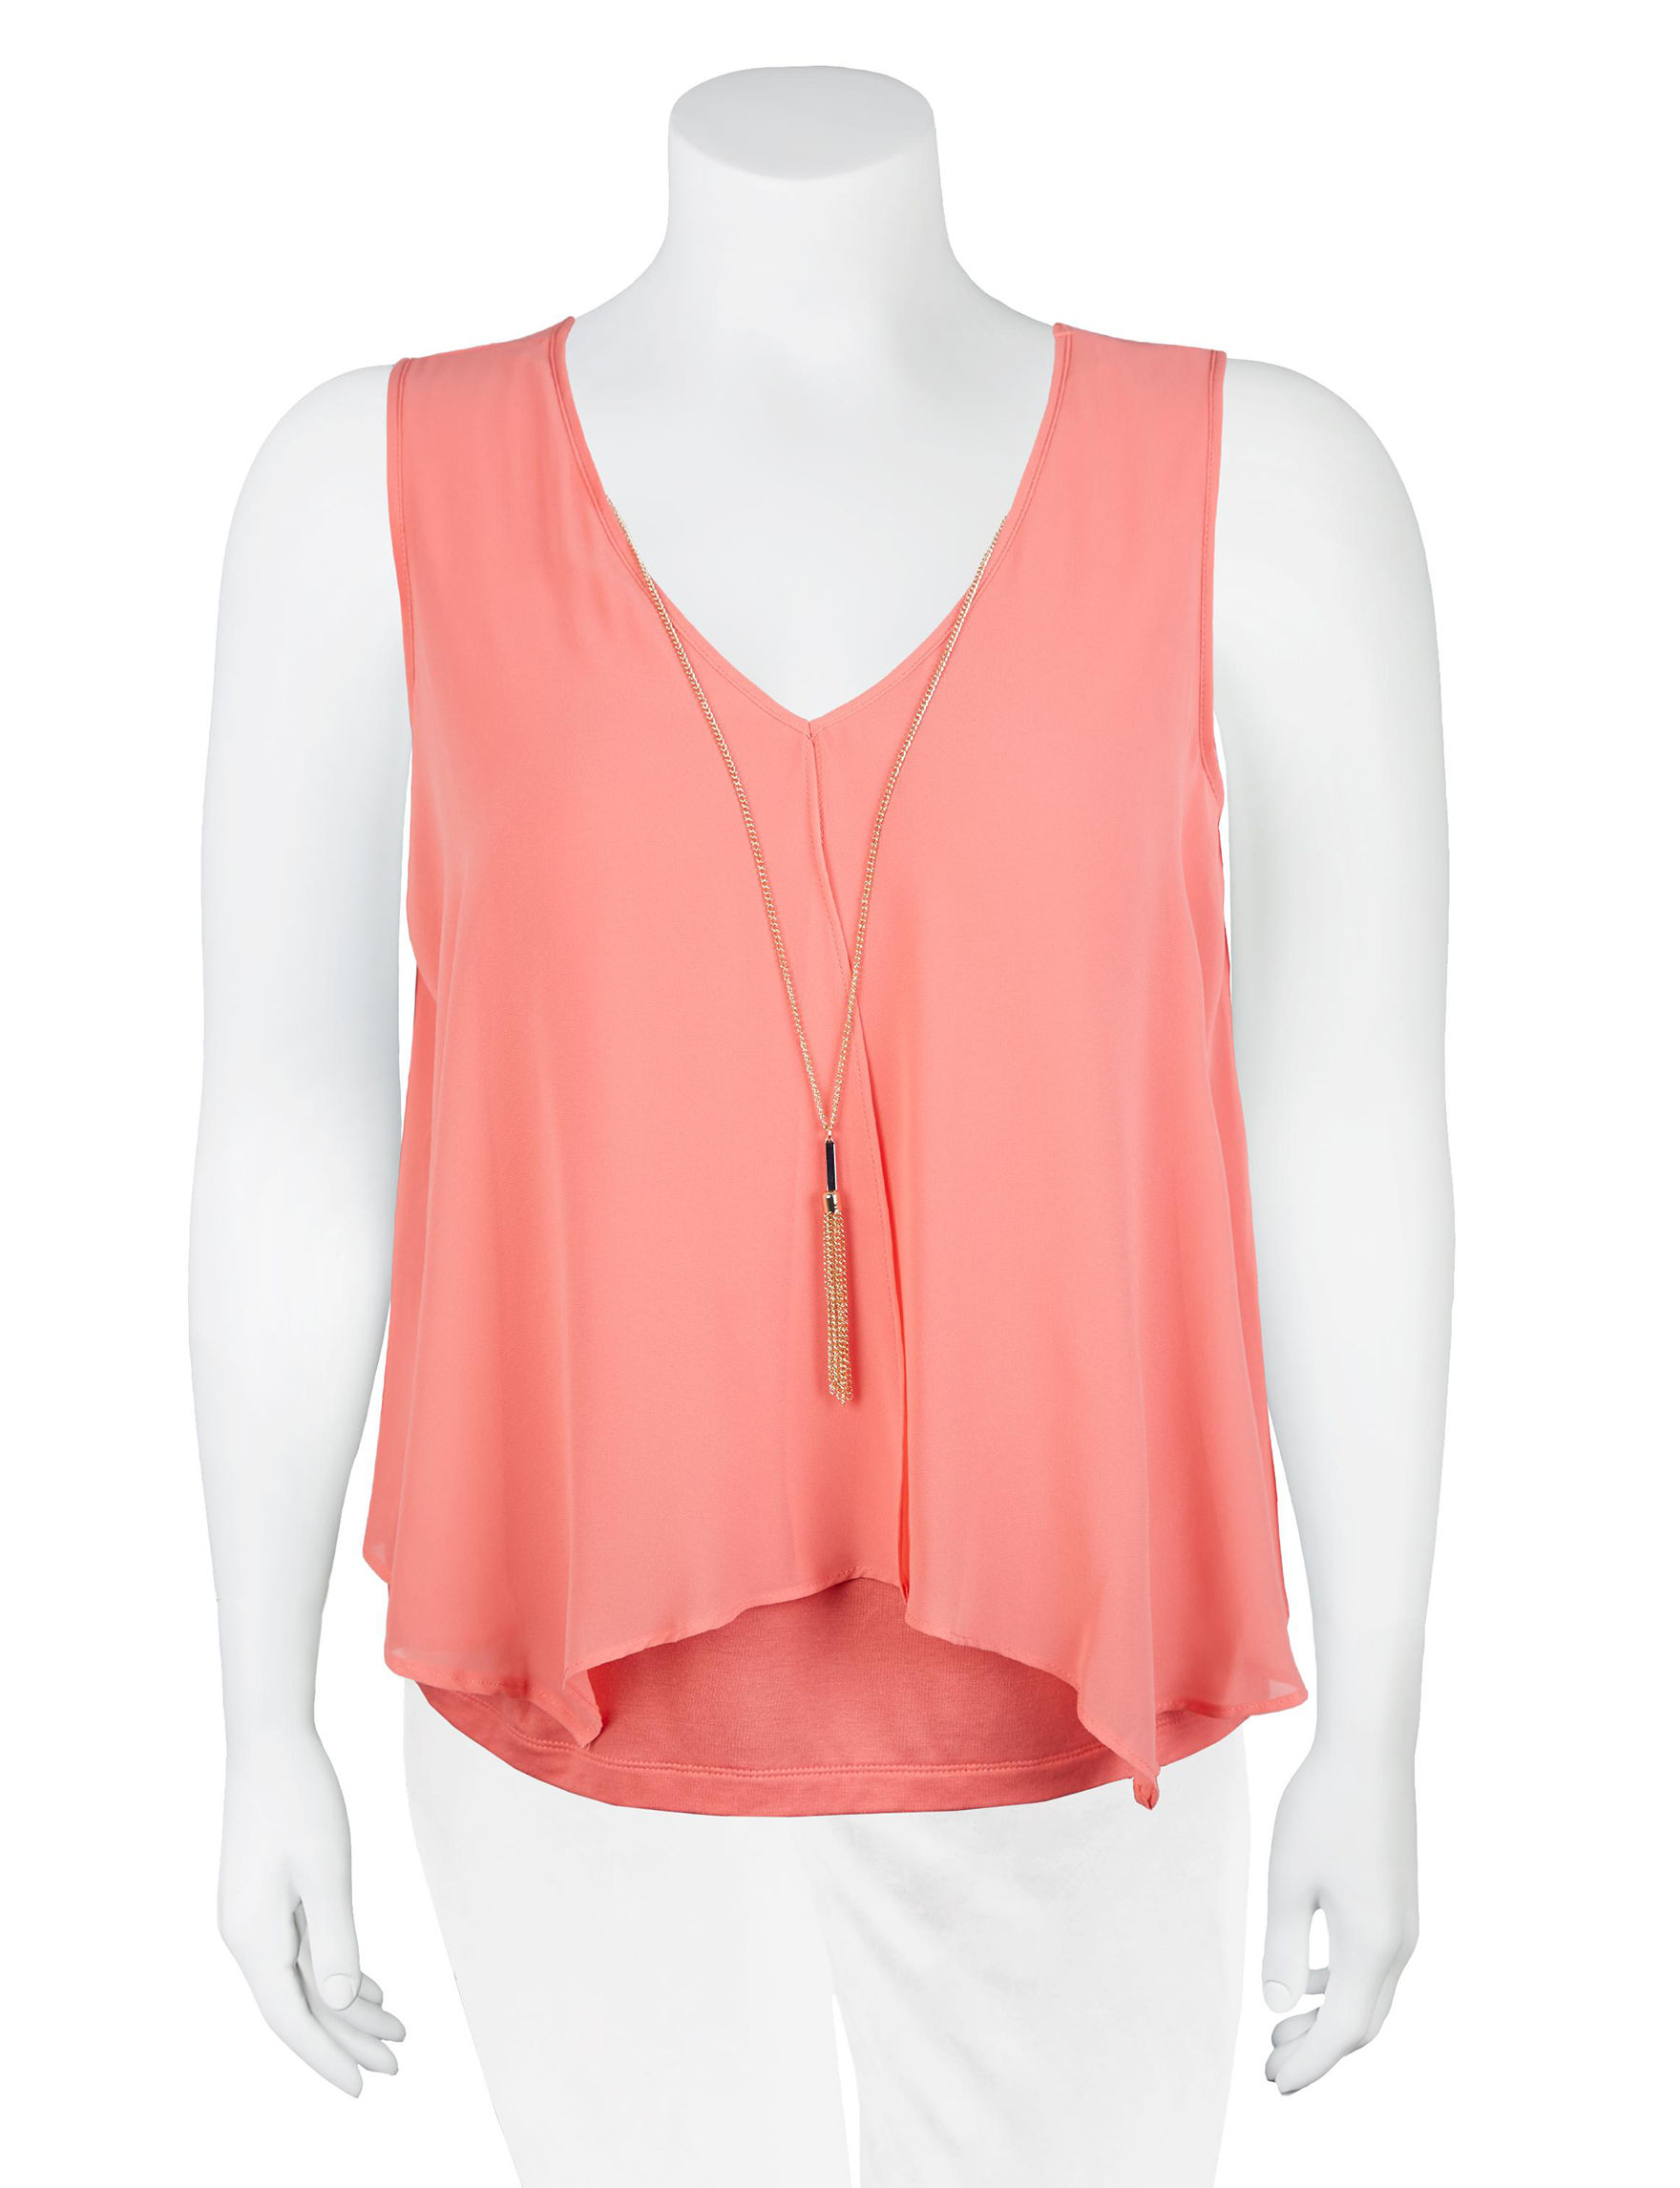 A. Byer Coral Shirts & Blouses